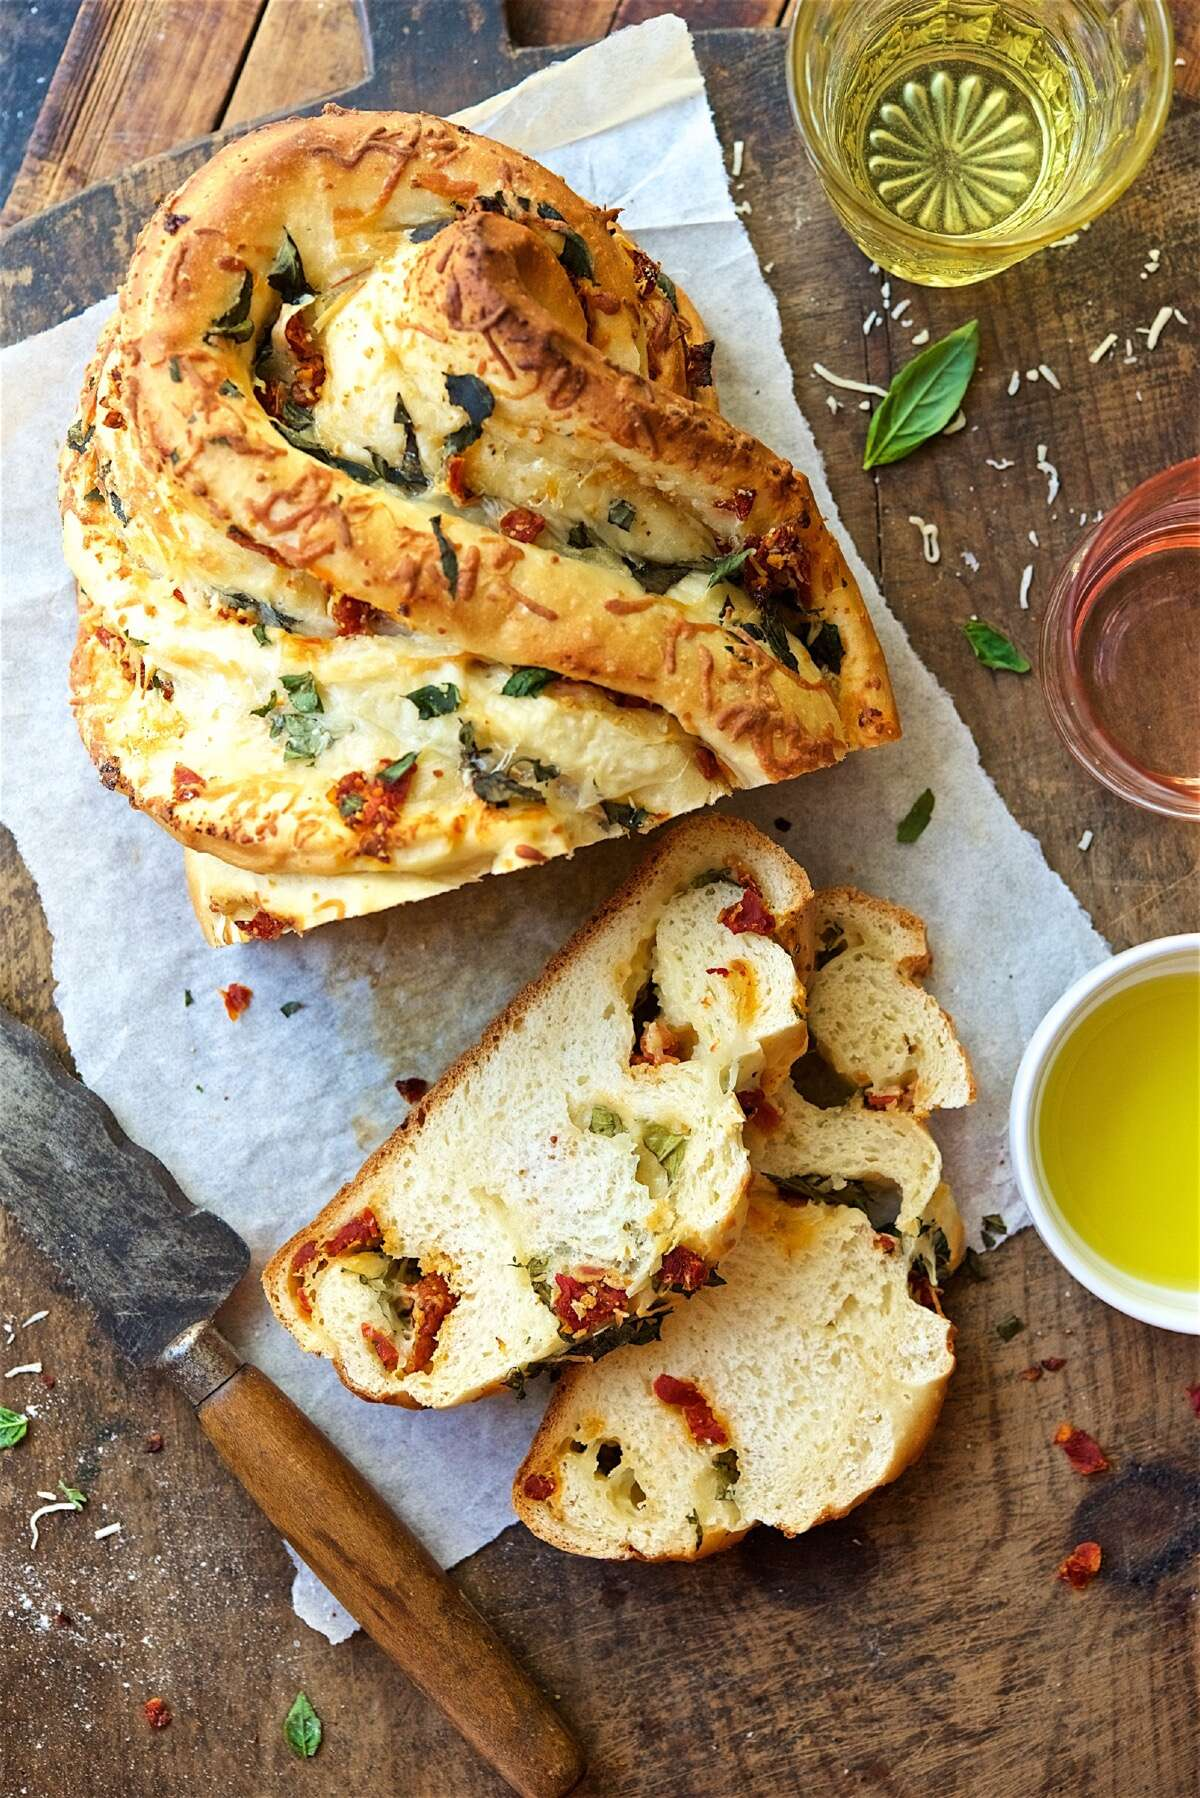 Pane Bianco, a filled. twisted bread stuffed with roasted tomatoes, cheese, garlic, and basil.